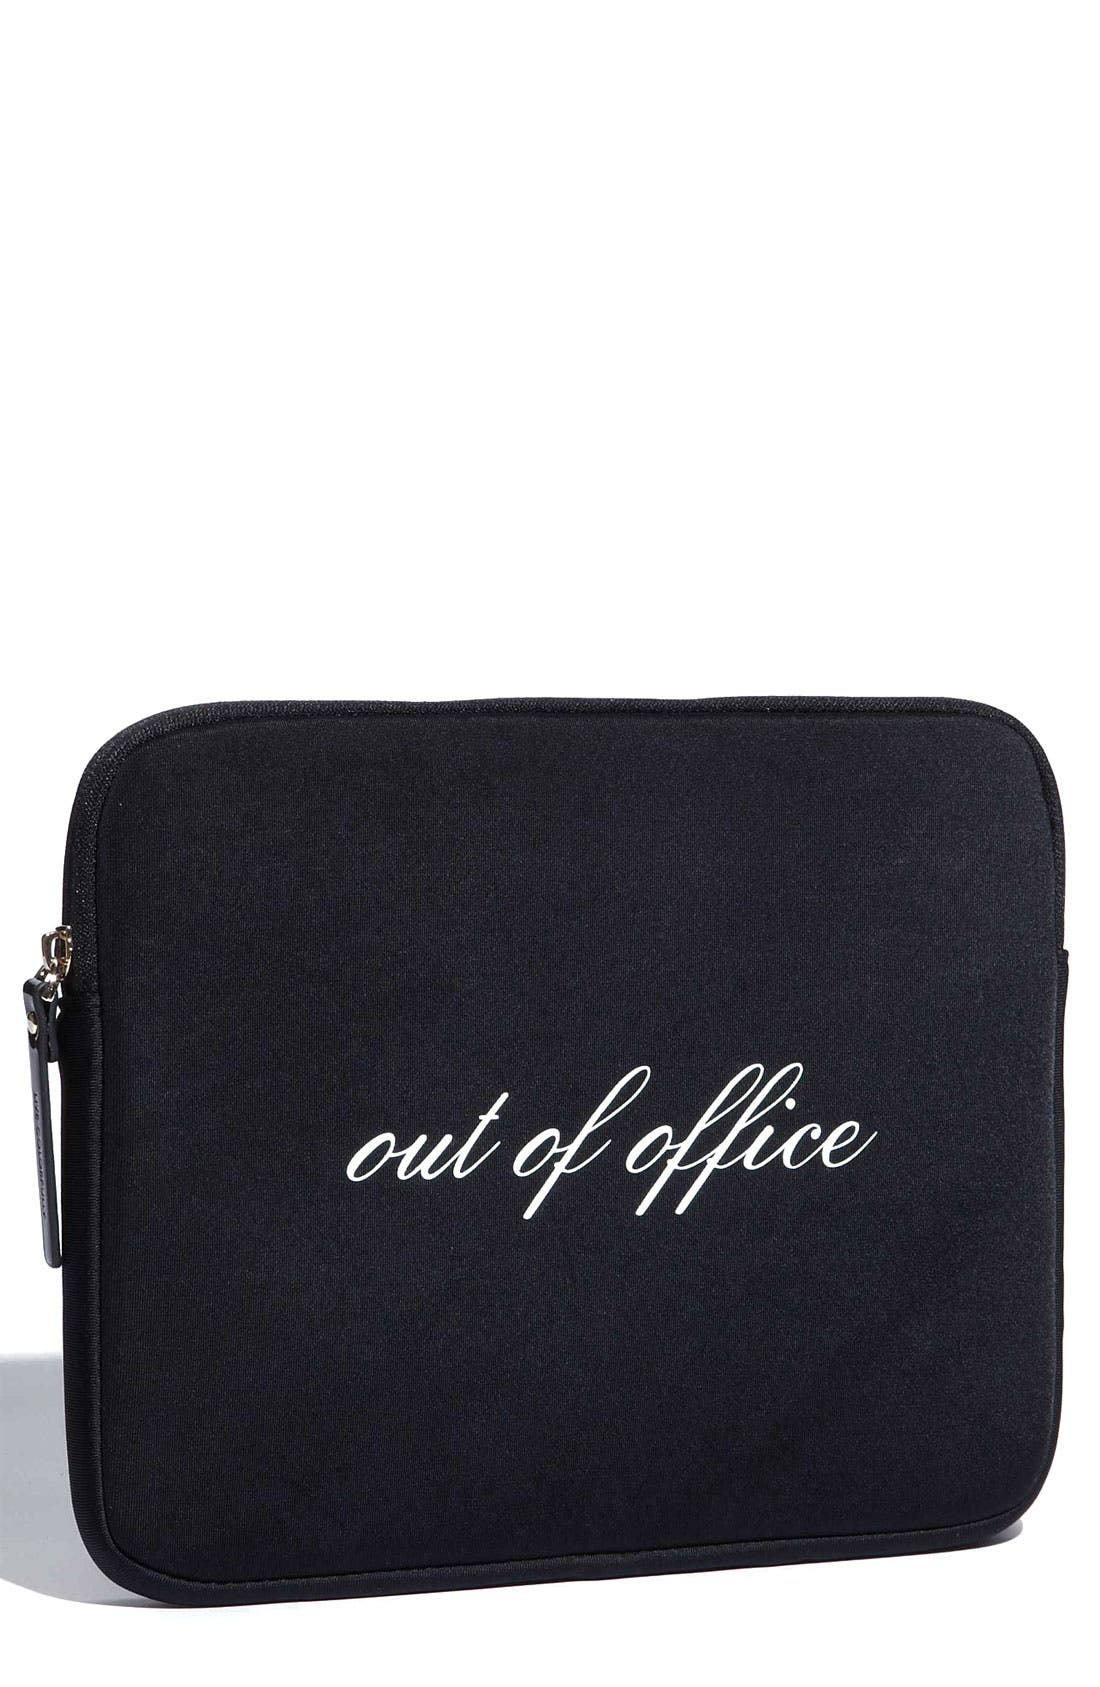 Alternate Image 1 Selected - kate spade new york 'out of office' iPad sleeve